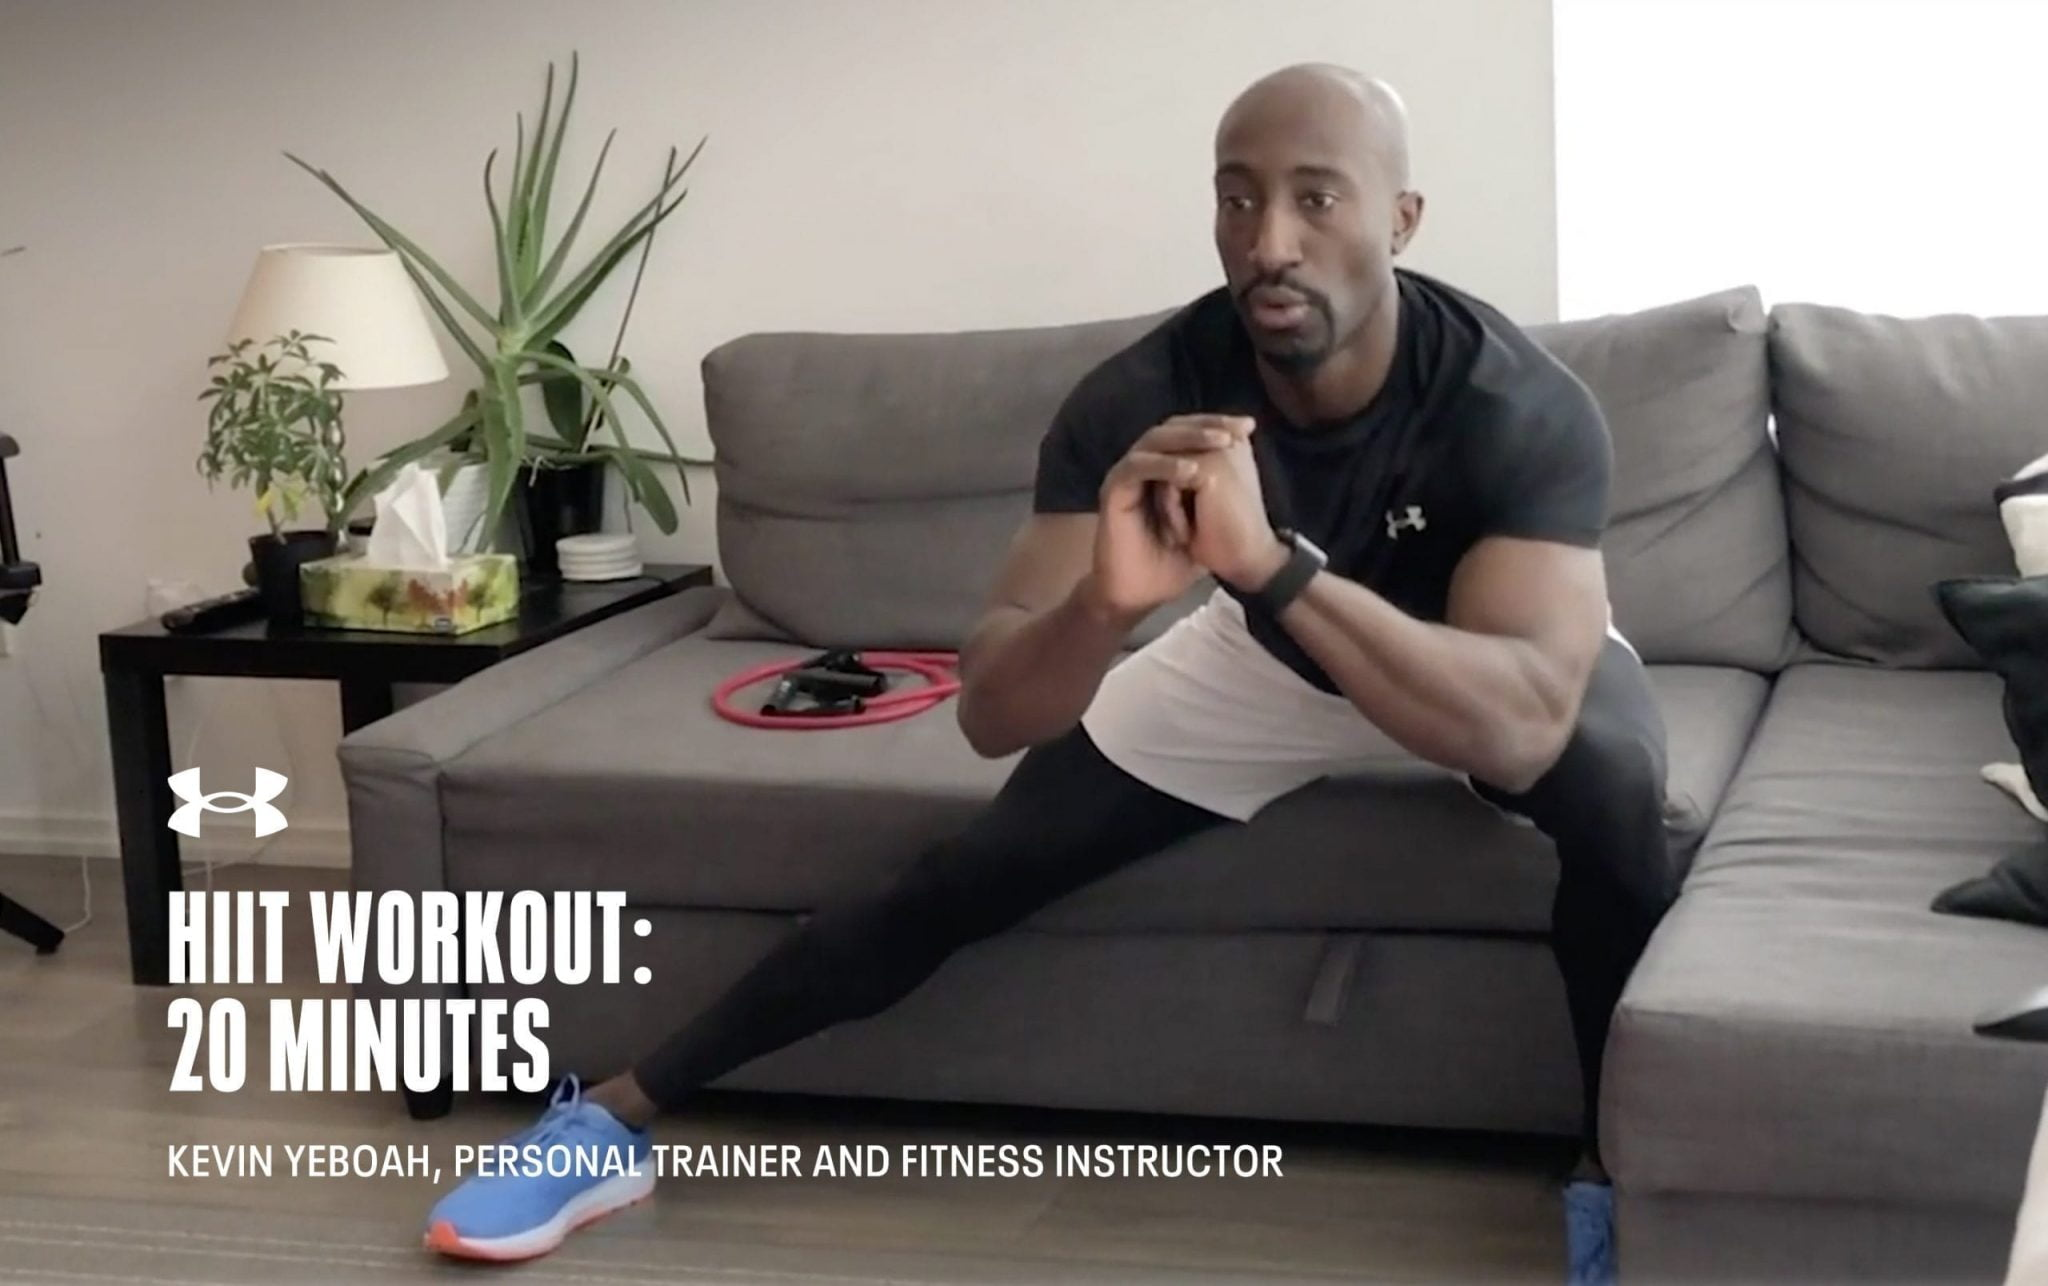 20 Minute Circuit with Kevin Yeboah